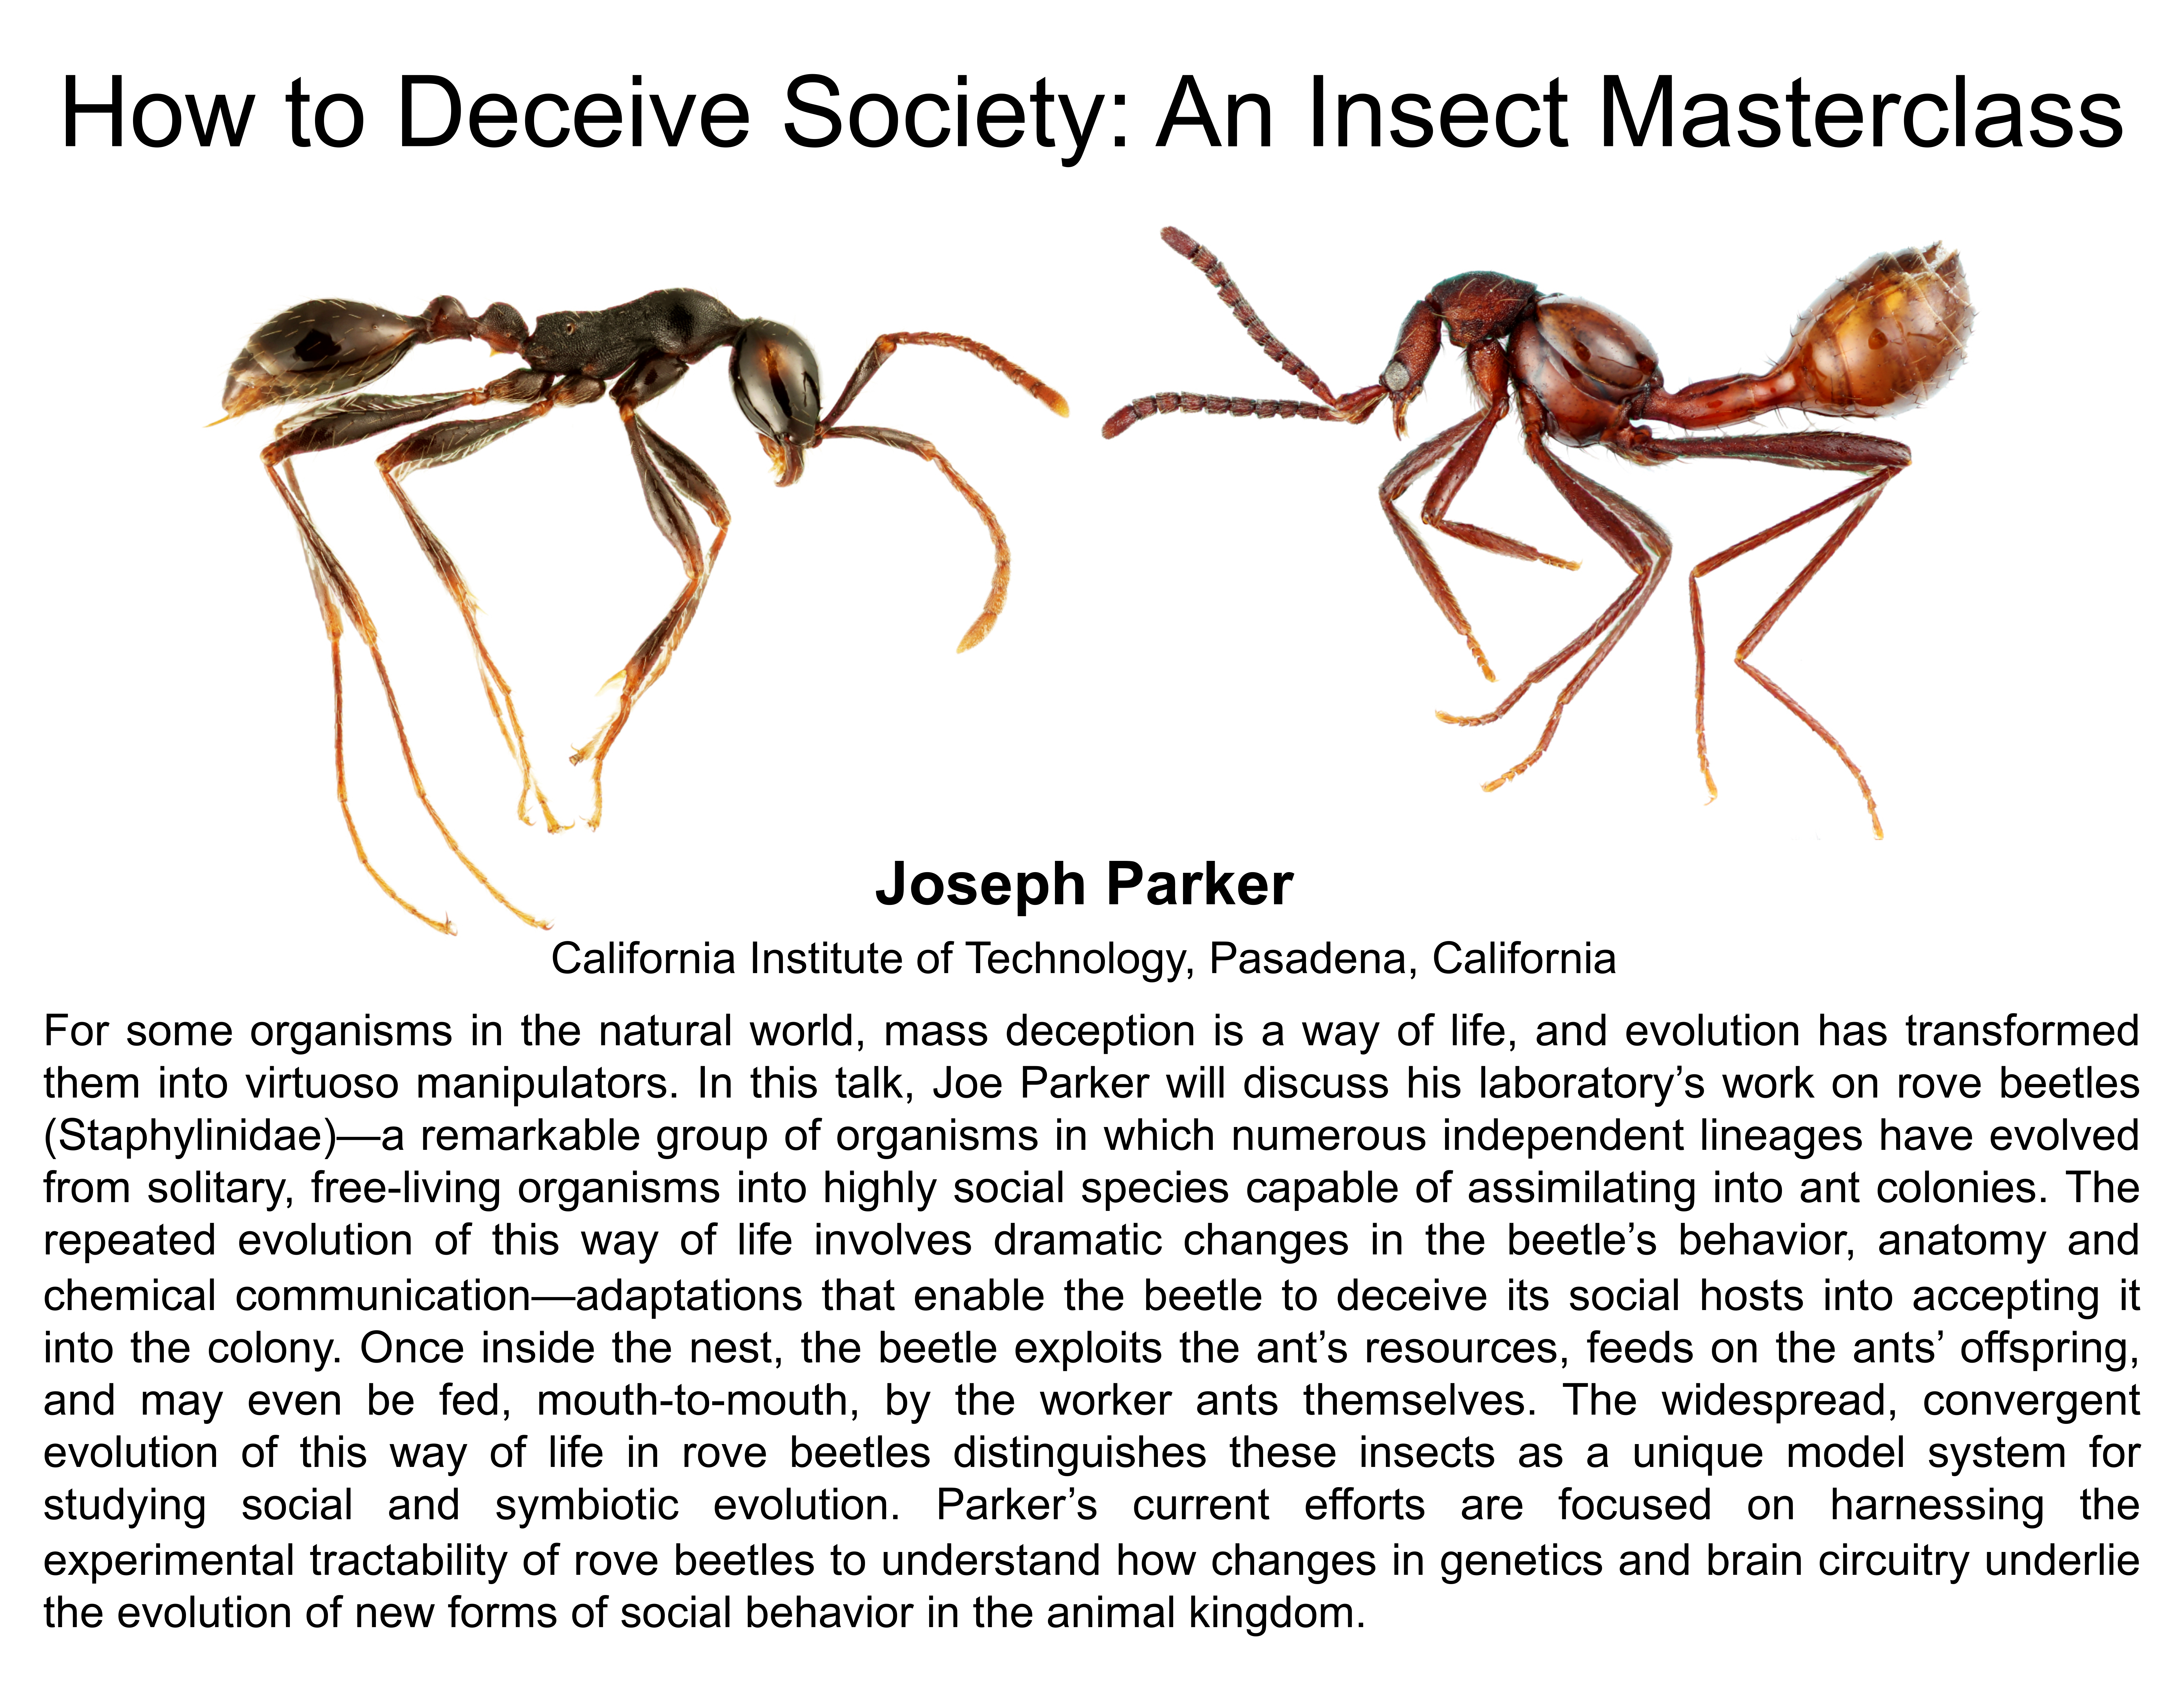 Plenary: How to Deceive Society: An Insect Masterclass